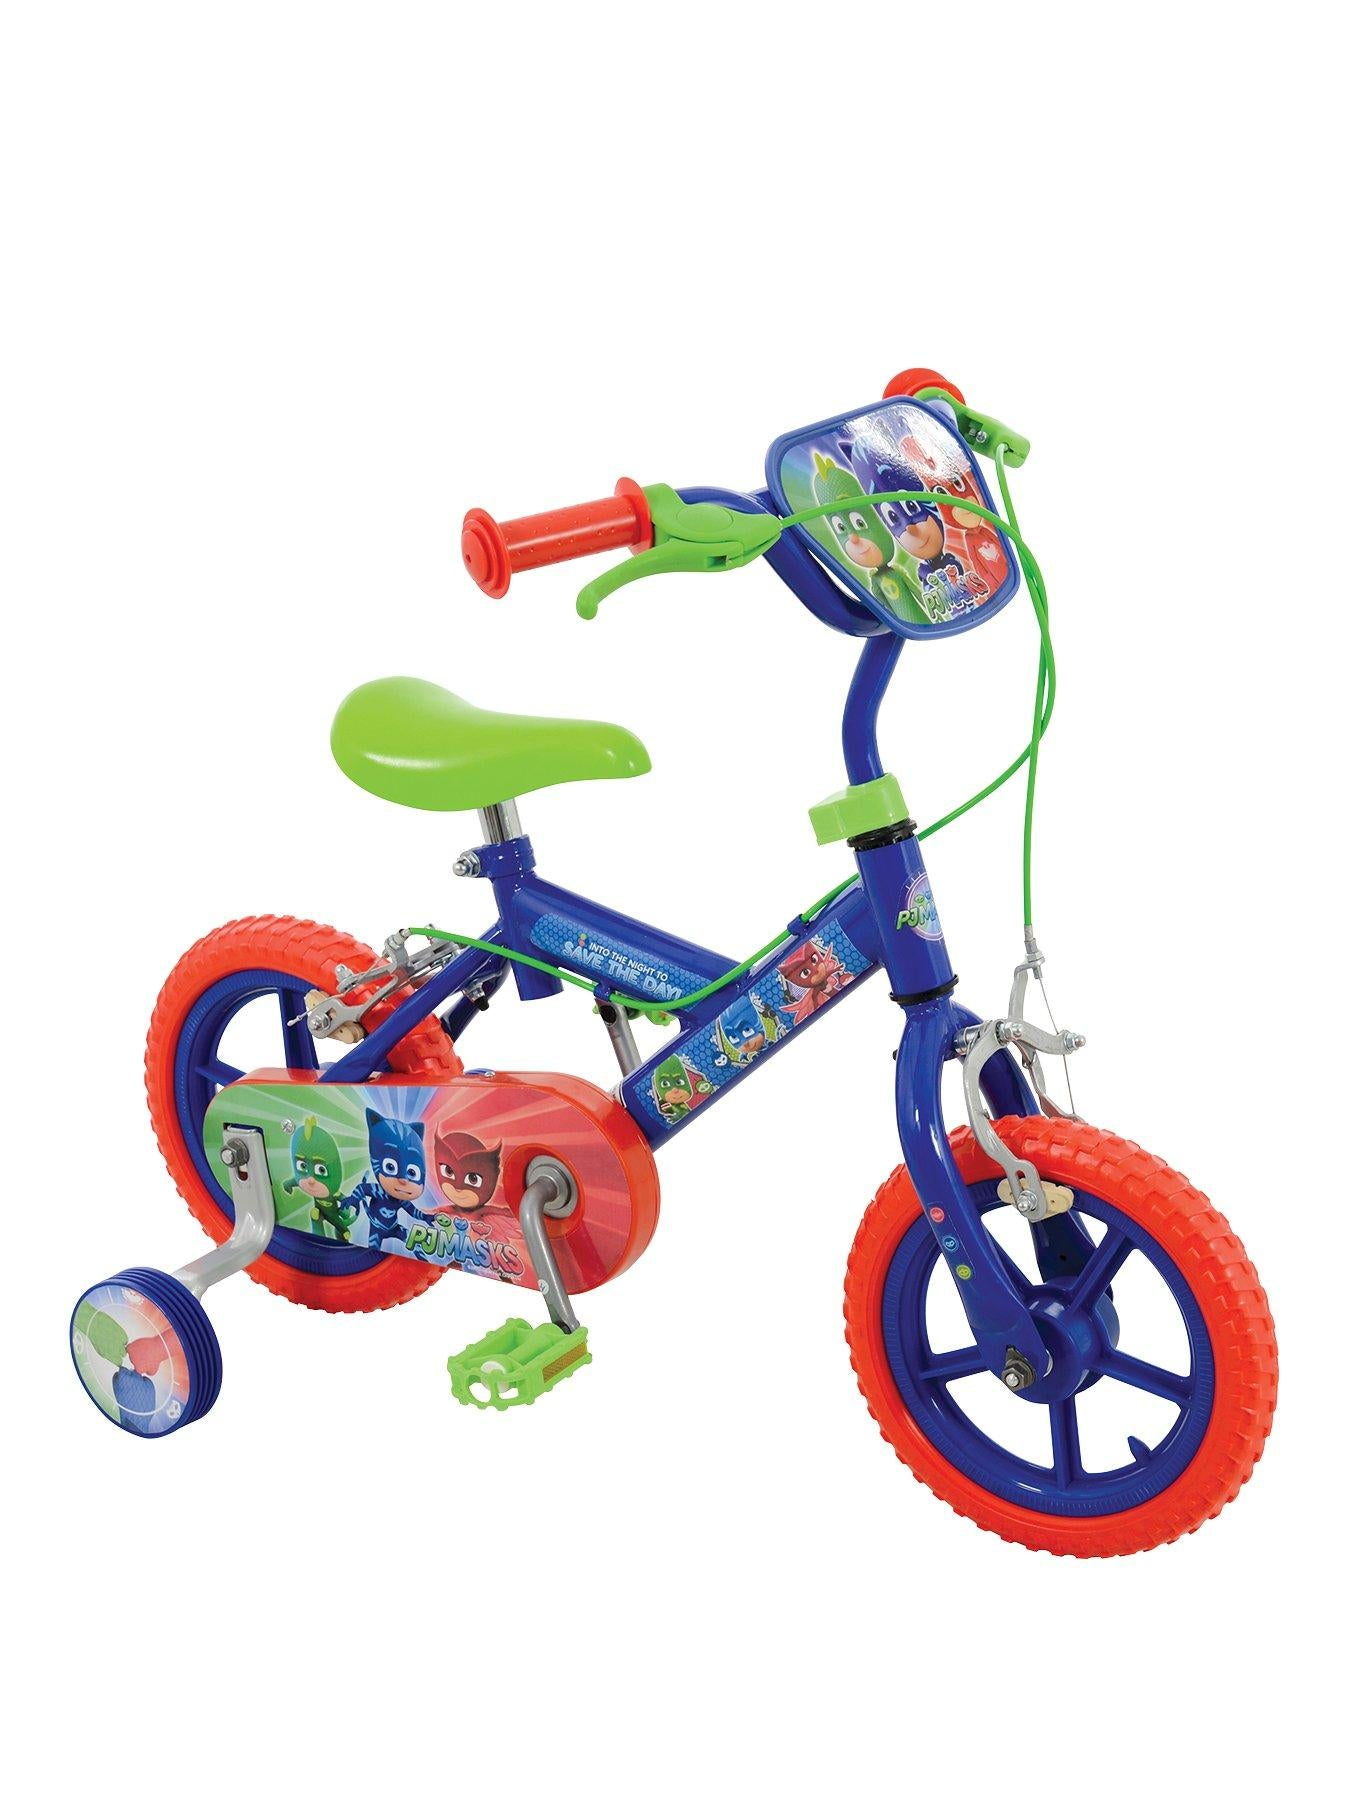 "PJ Masks 12"" Bike"